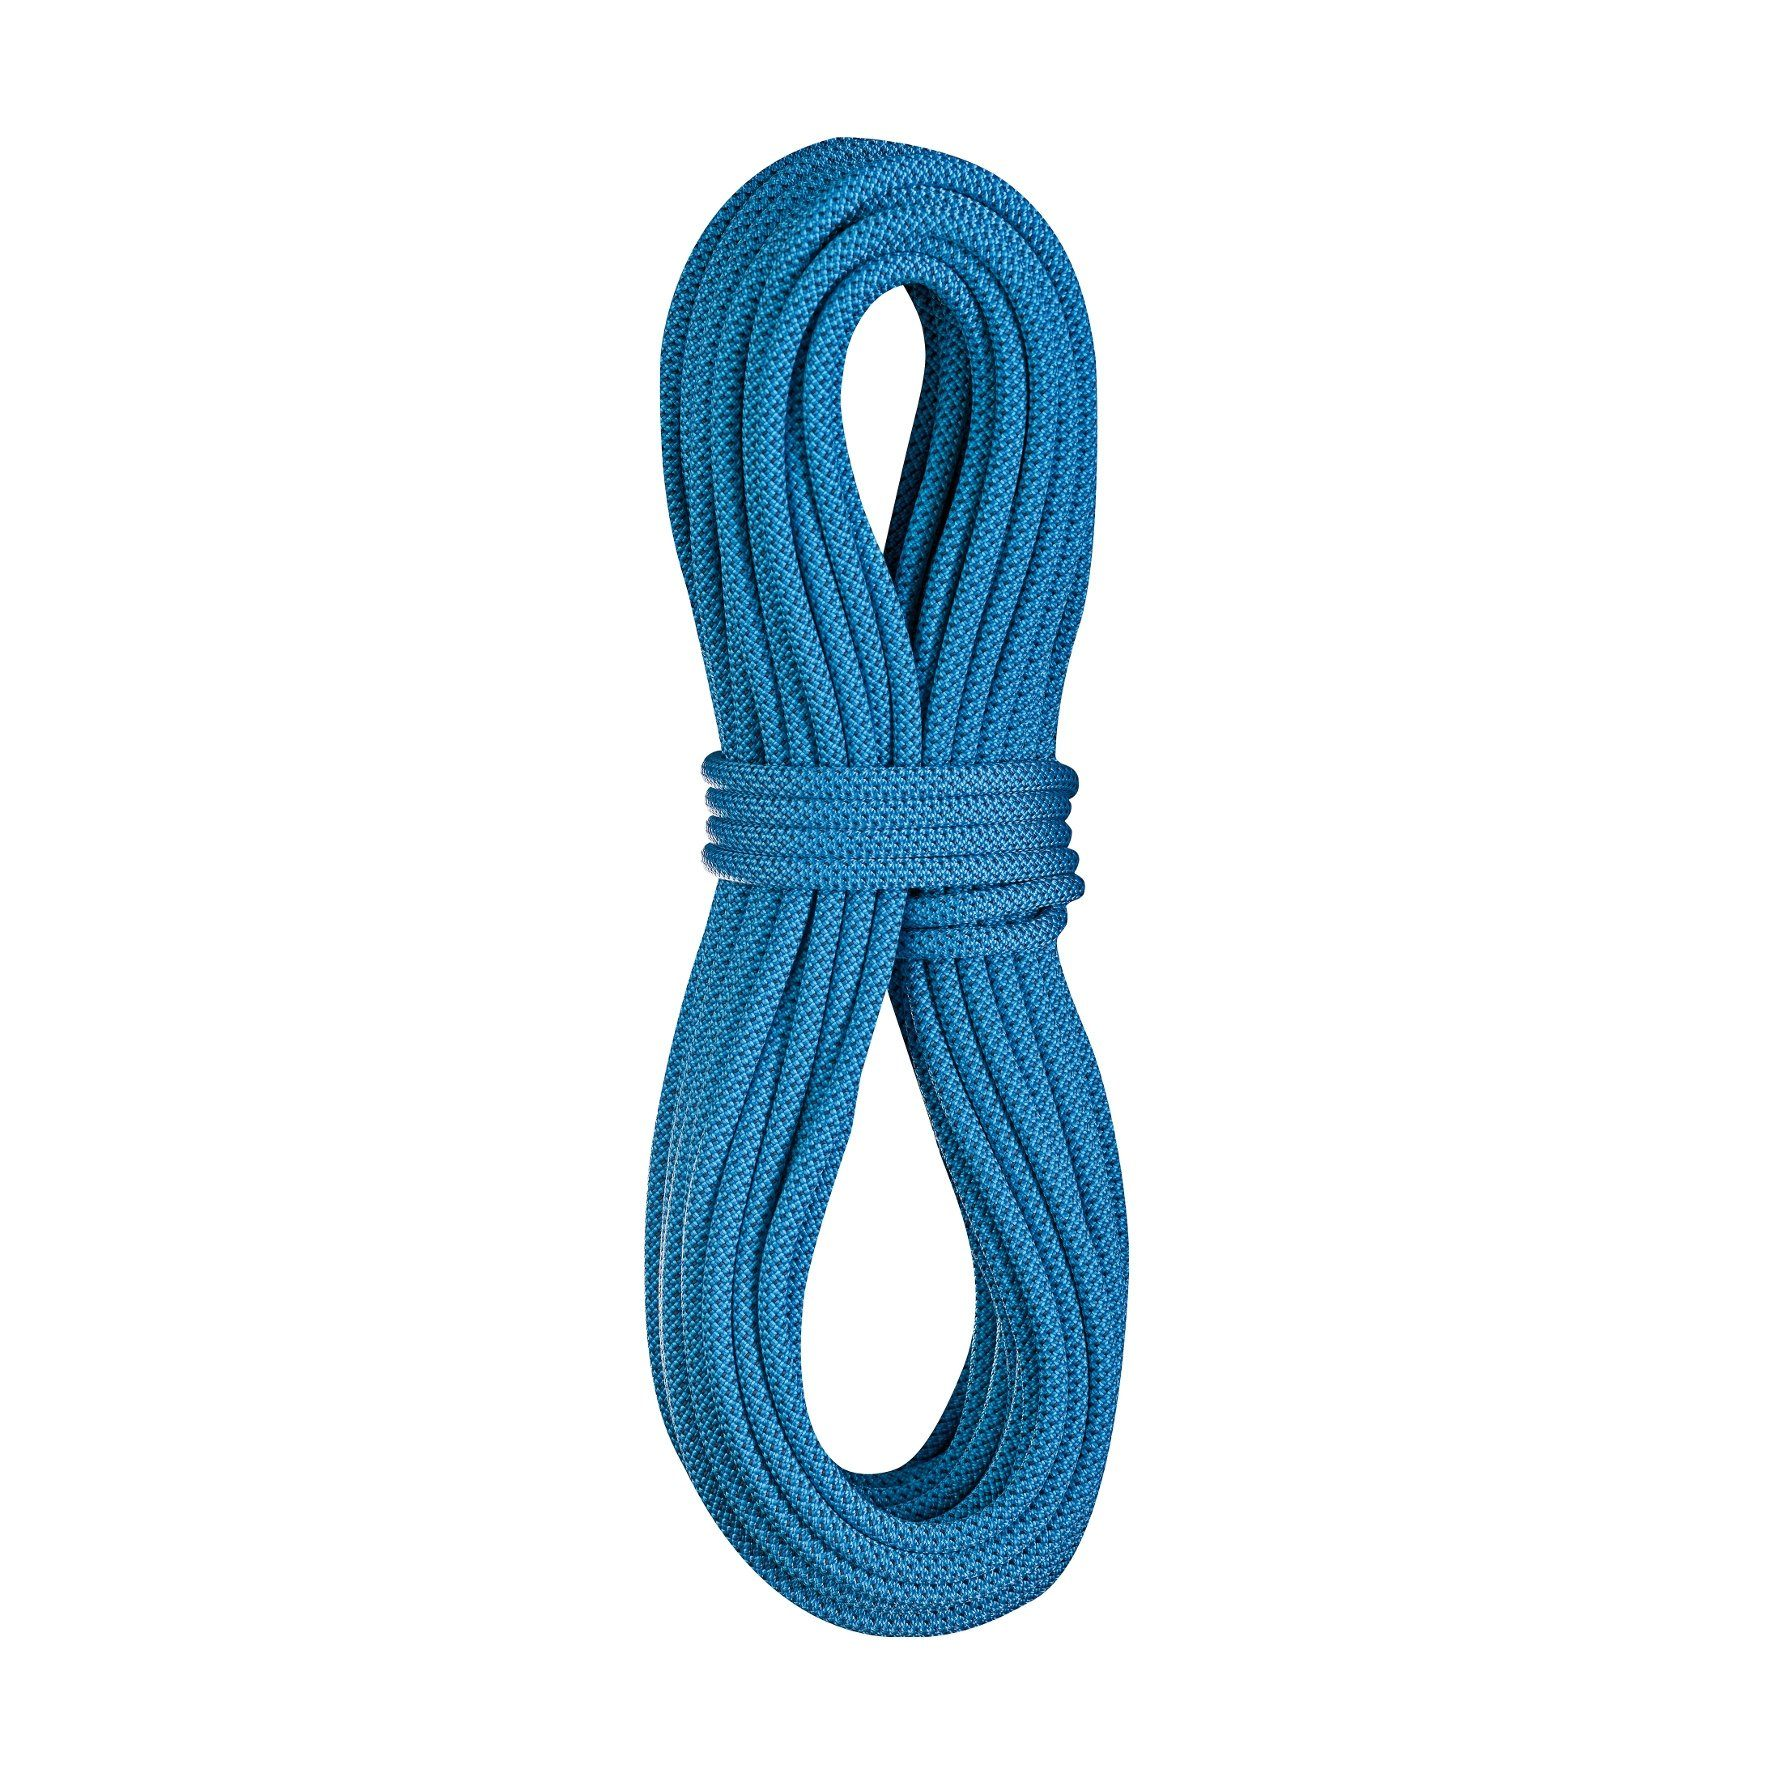 Edelrid Kletterseil »Tower Rope 10,5mm 60m«